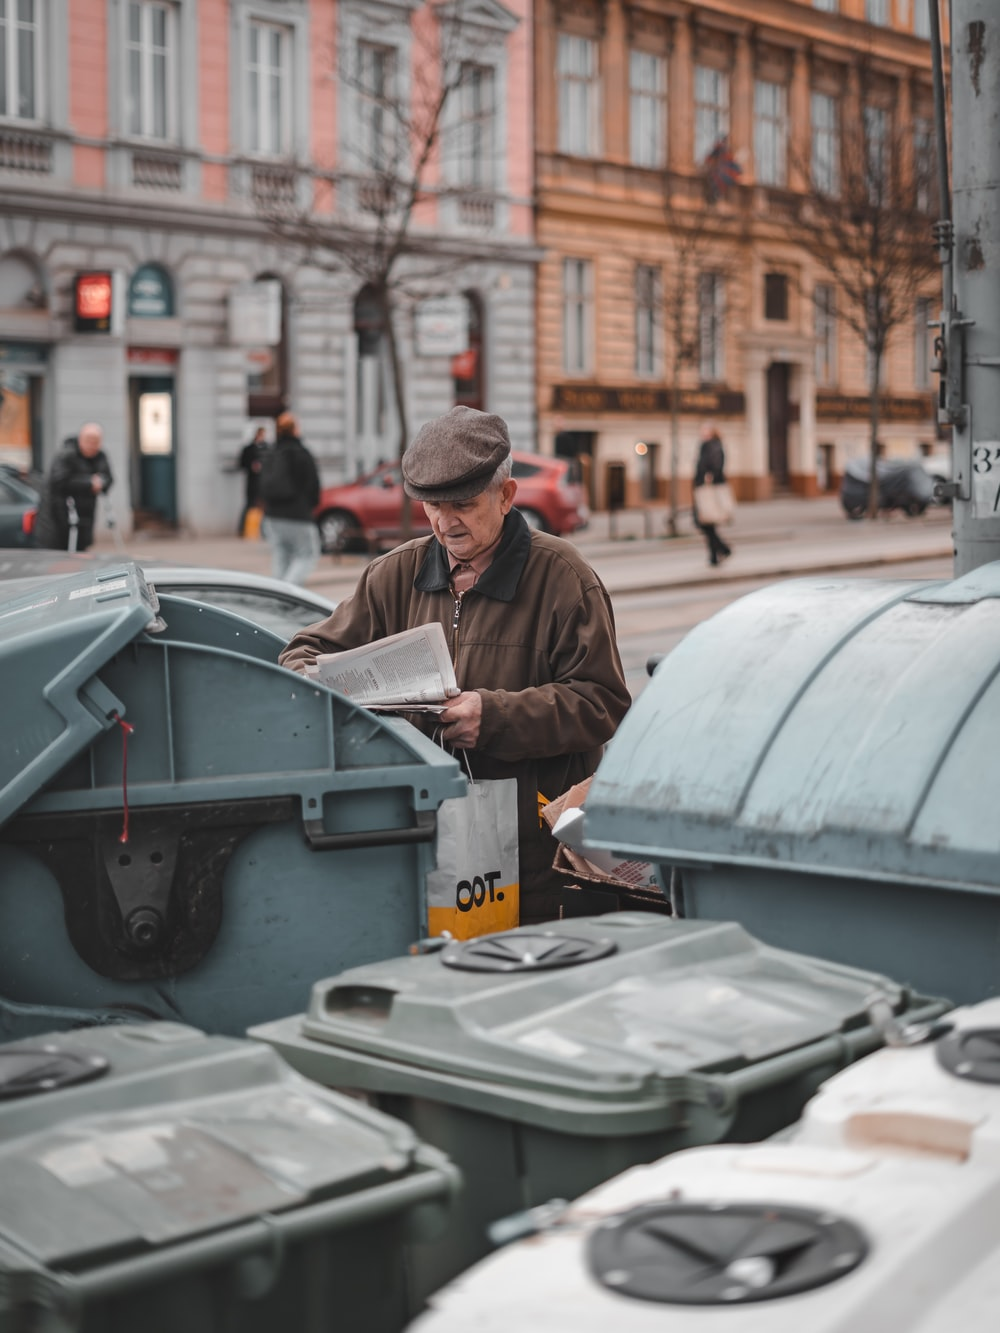 man reading paper beside trash cans